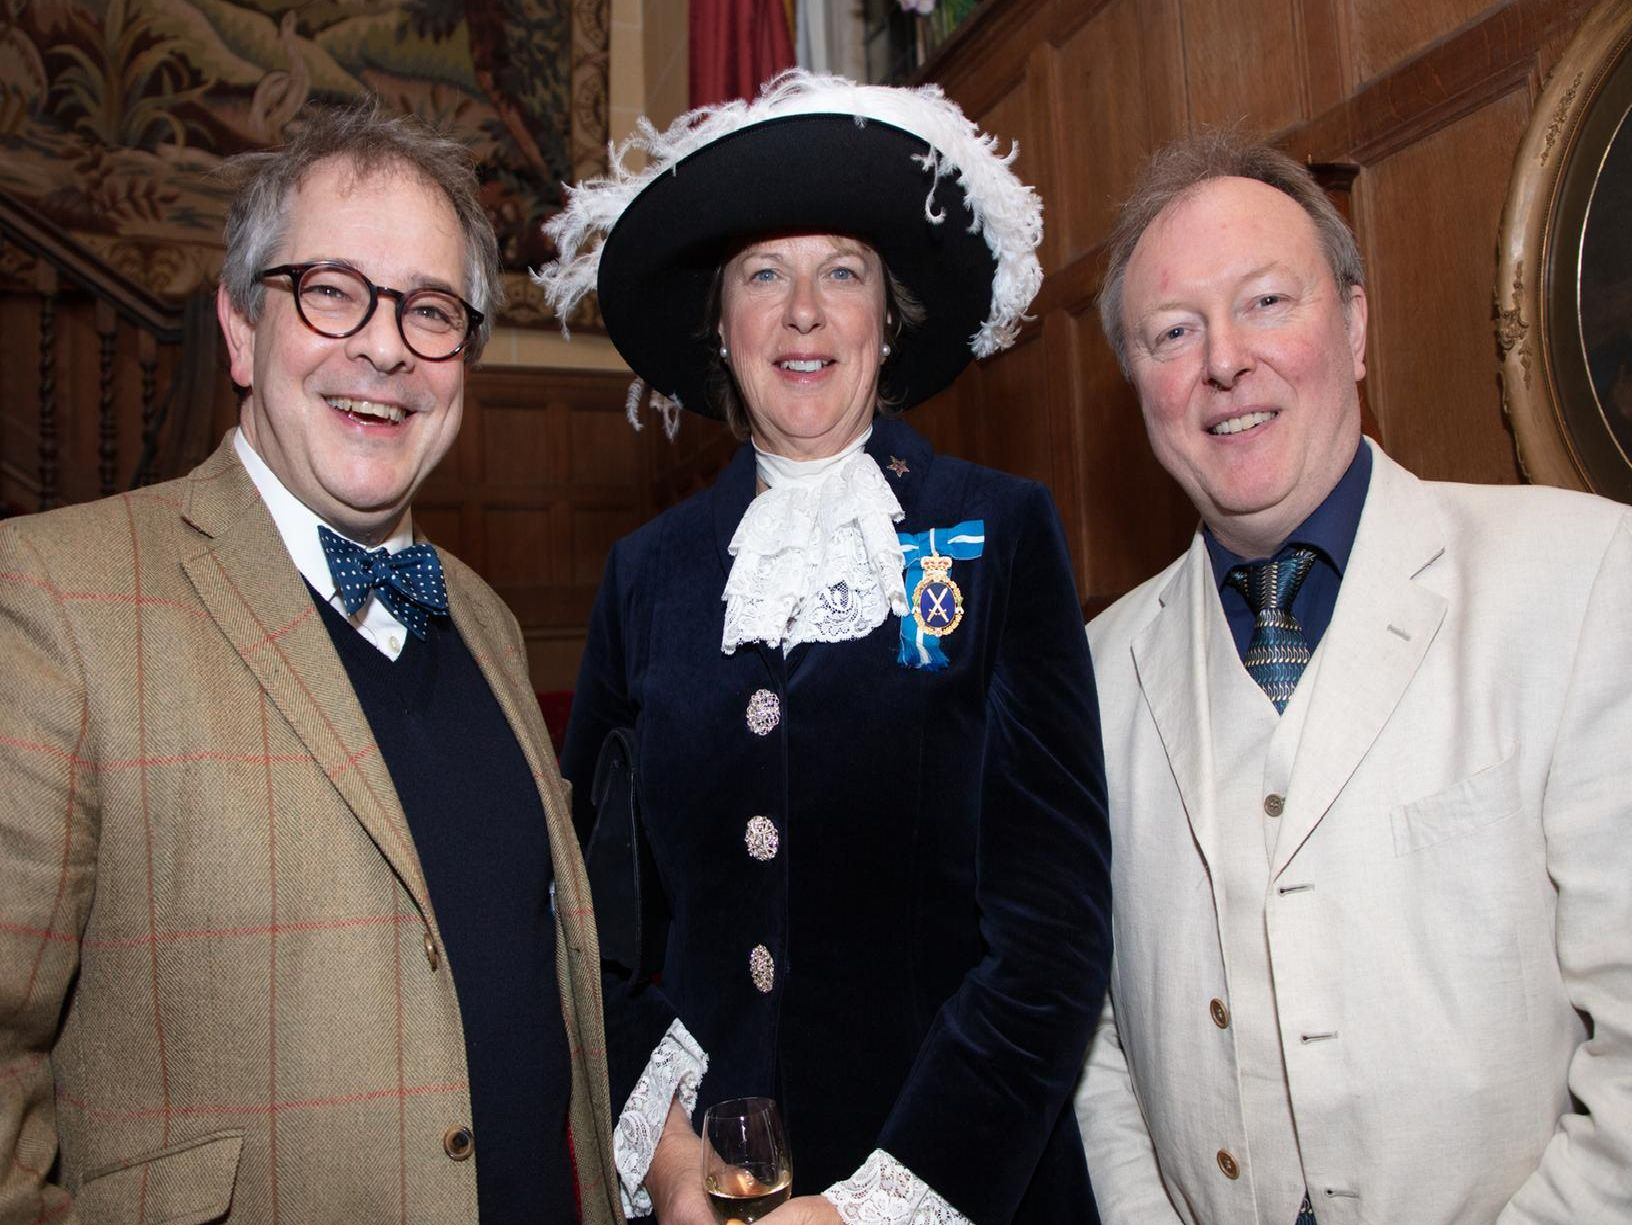 Rupert Toovey, Caroline Nicholls, High Sheriff of West Sussex and Andrew Bernardi